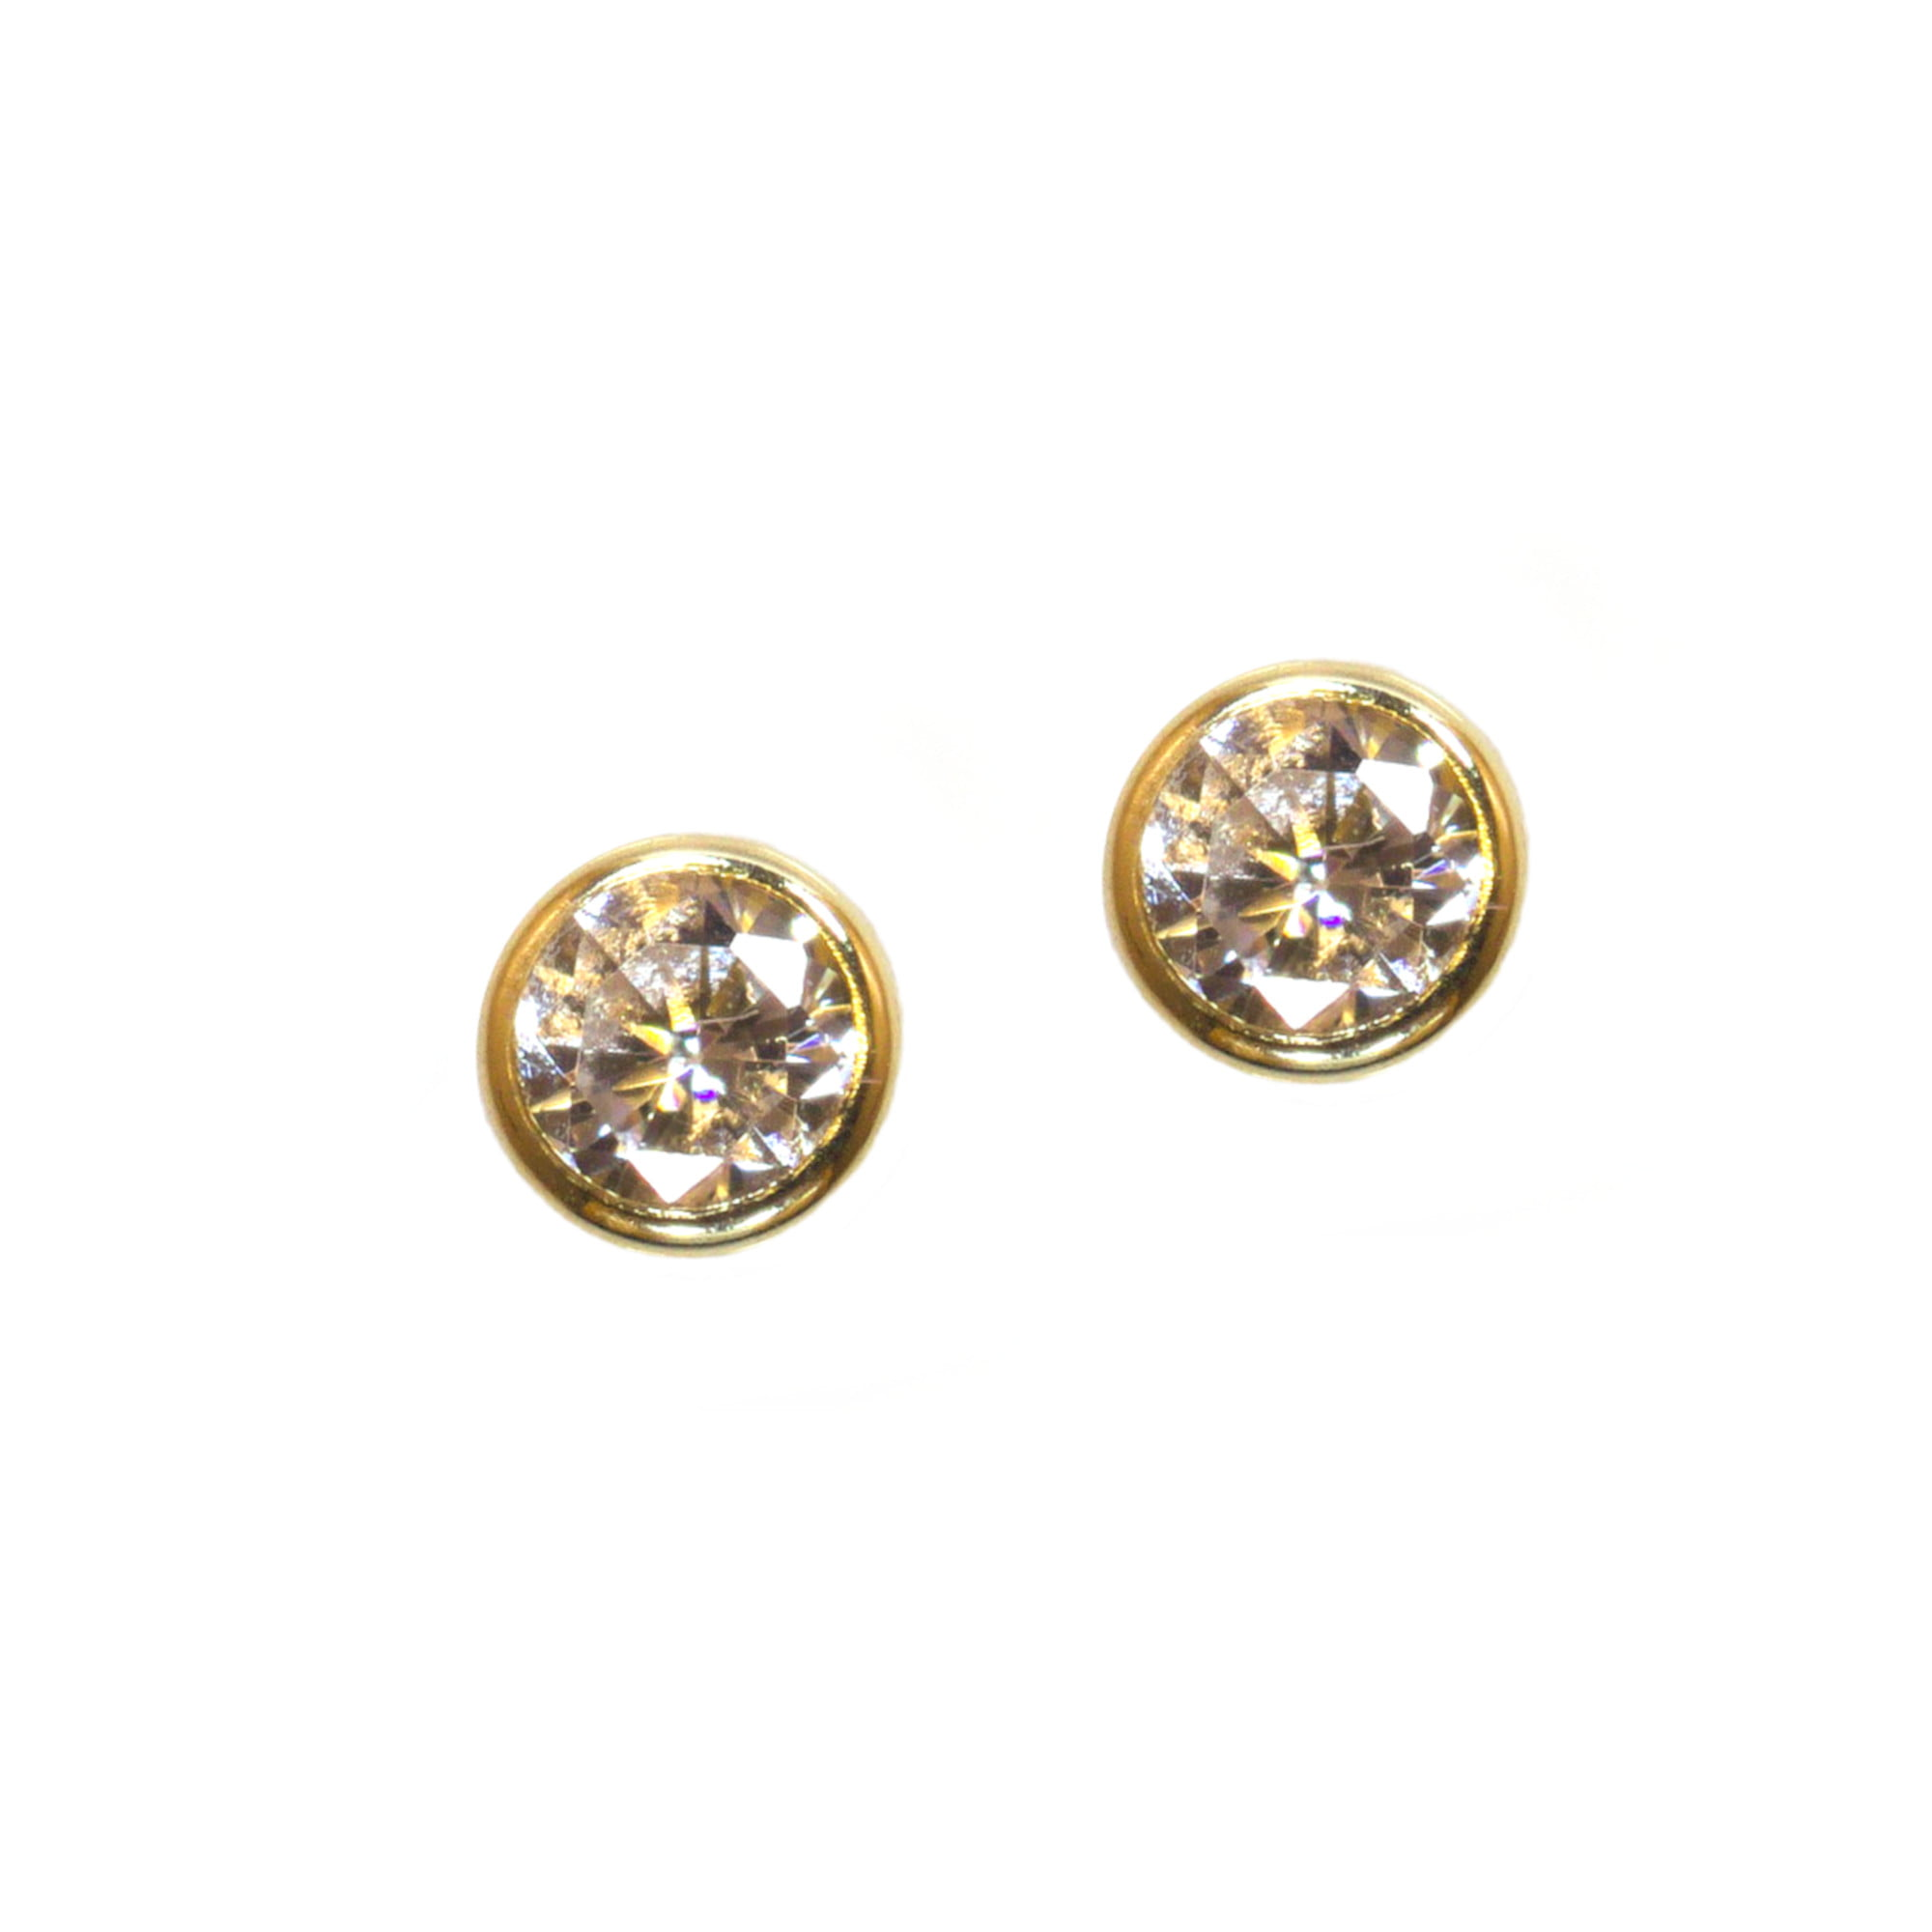 3mm round cz stud earrings in 9ct yellow gold